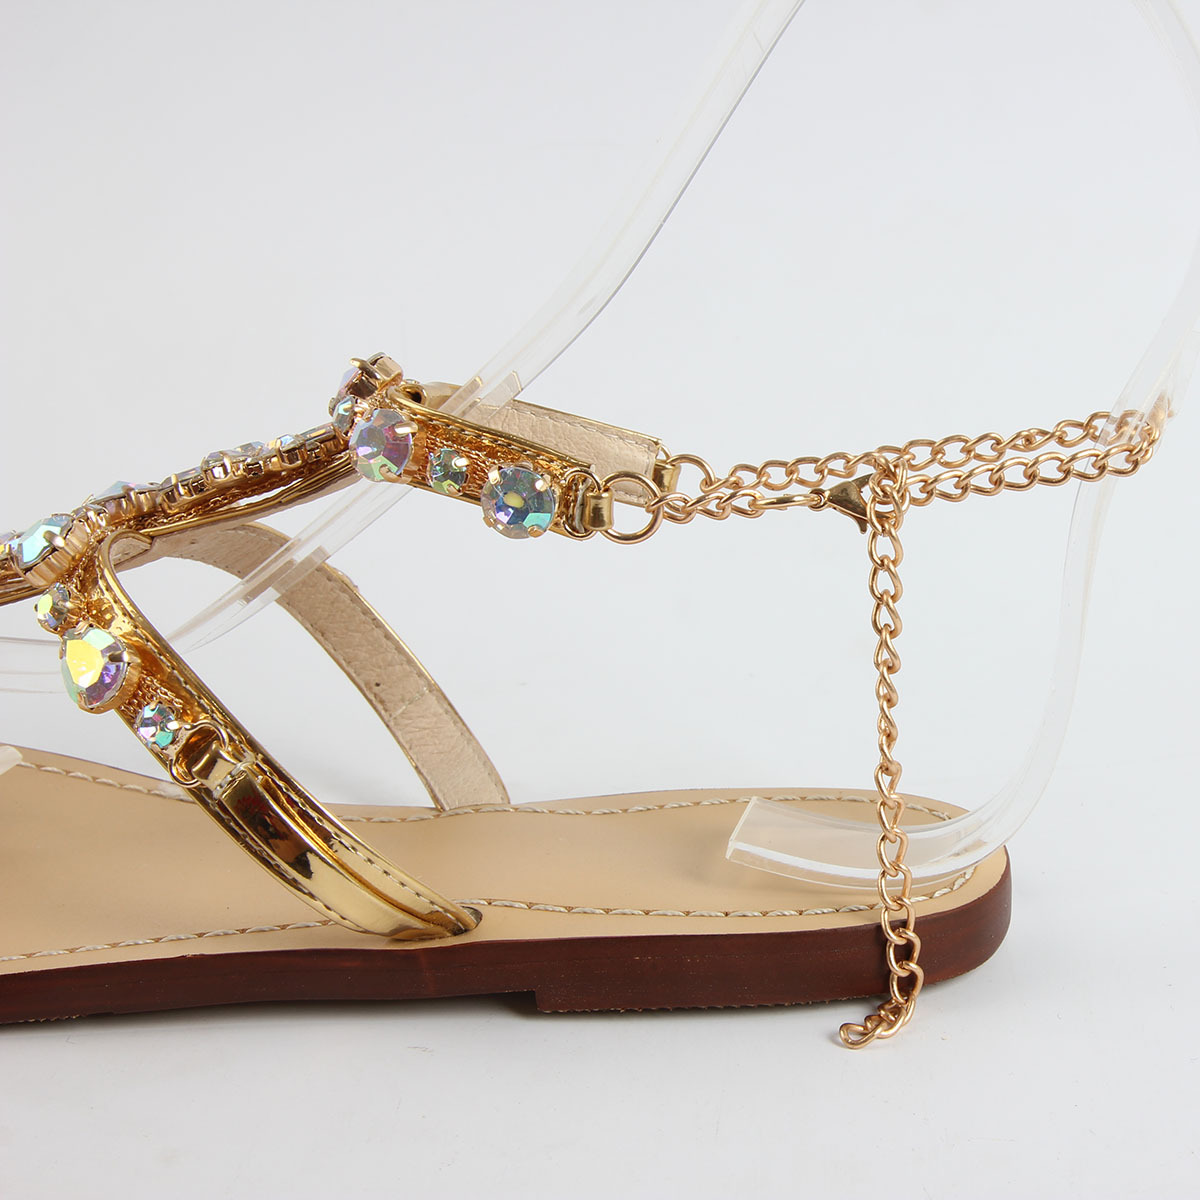 9d8383d1ce1e6 Woman Sandals Women Shoes Fashion Rhinestones Chains Thong Gladiator Flat  Sandals Crystal Chaussure Sandalias Mujer Plus Size 47-in Women s Sandals  from ...